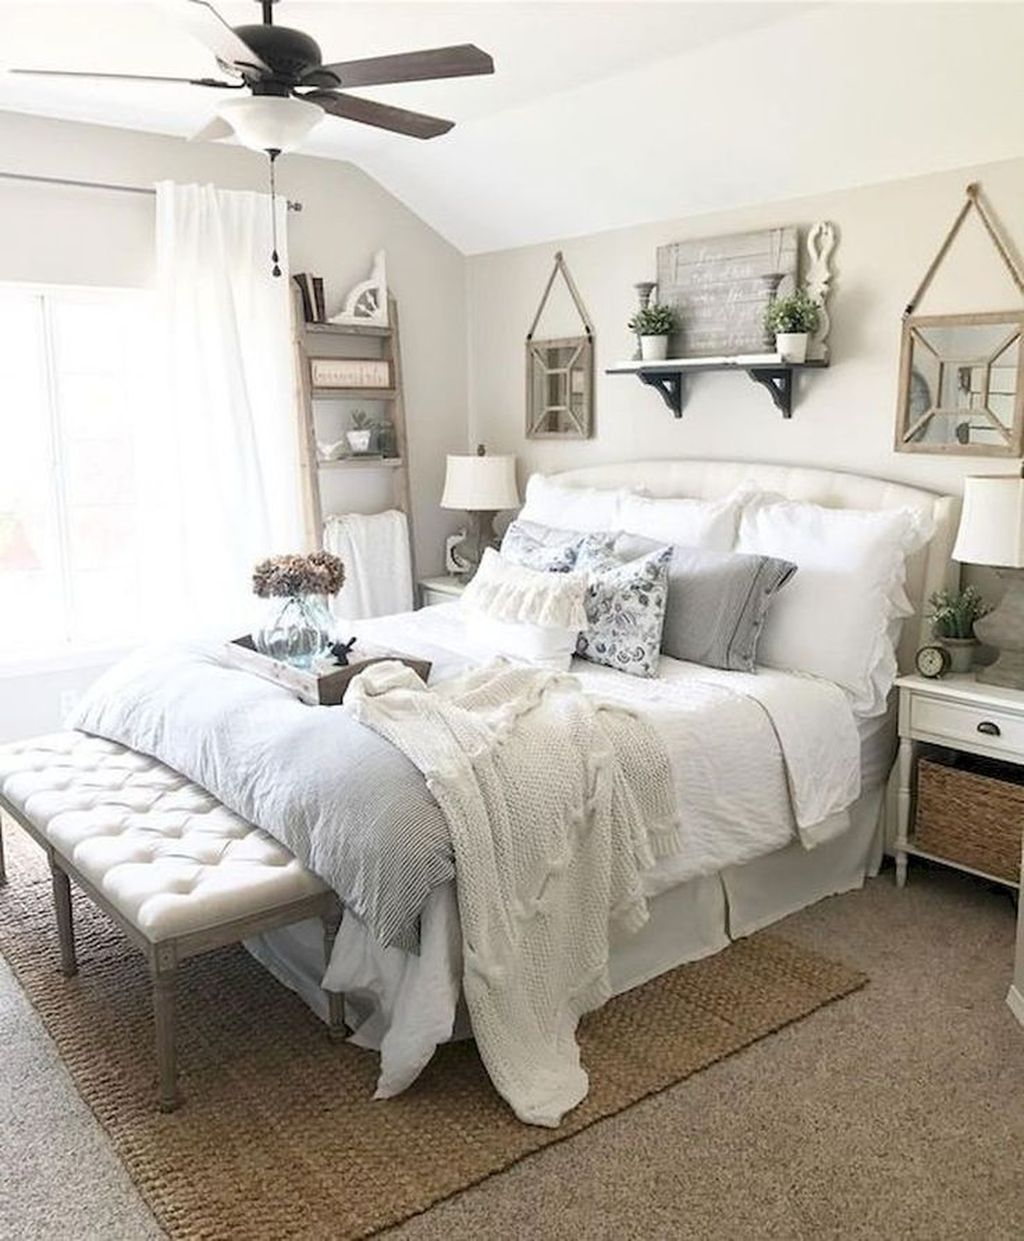 Vintage Farmhouse Bedroom Decor Ideas On A Budget To Try 10